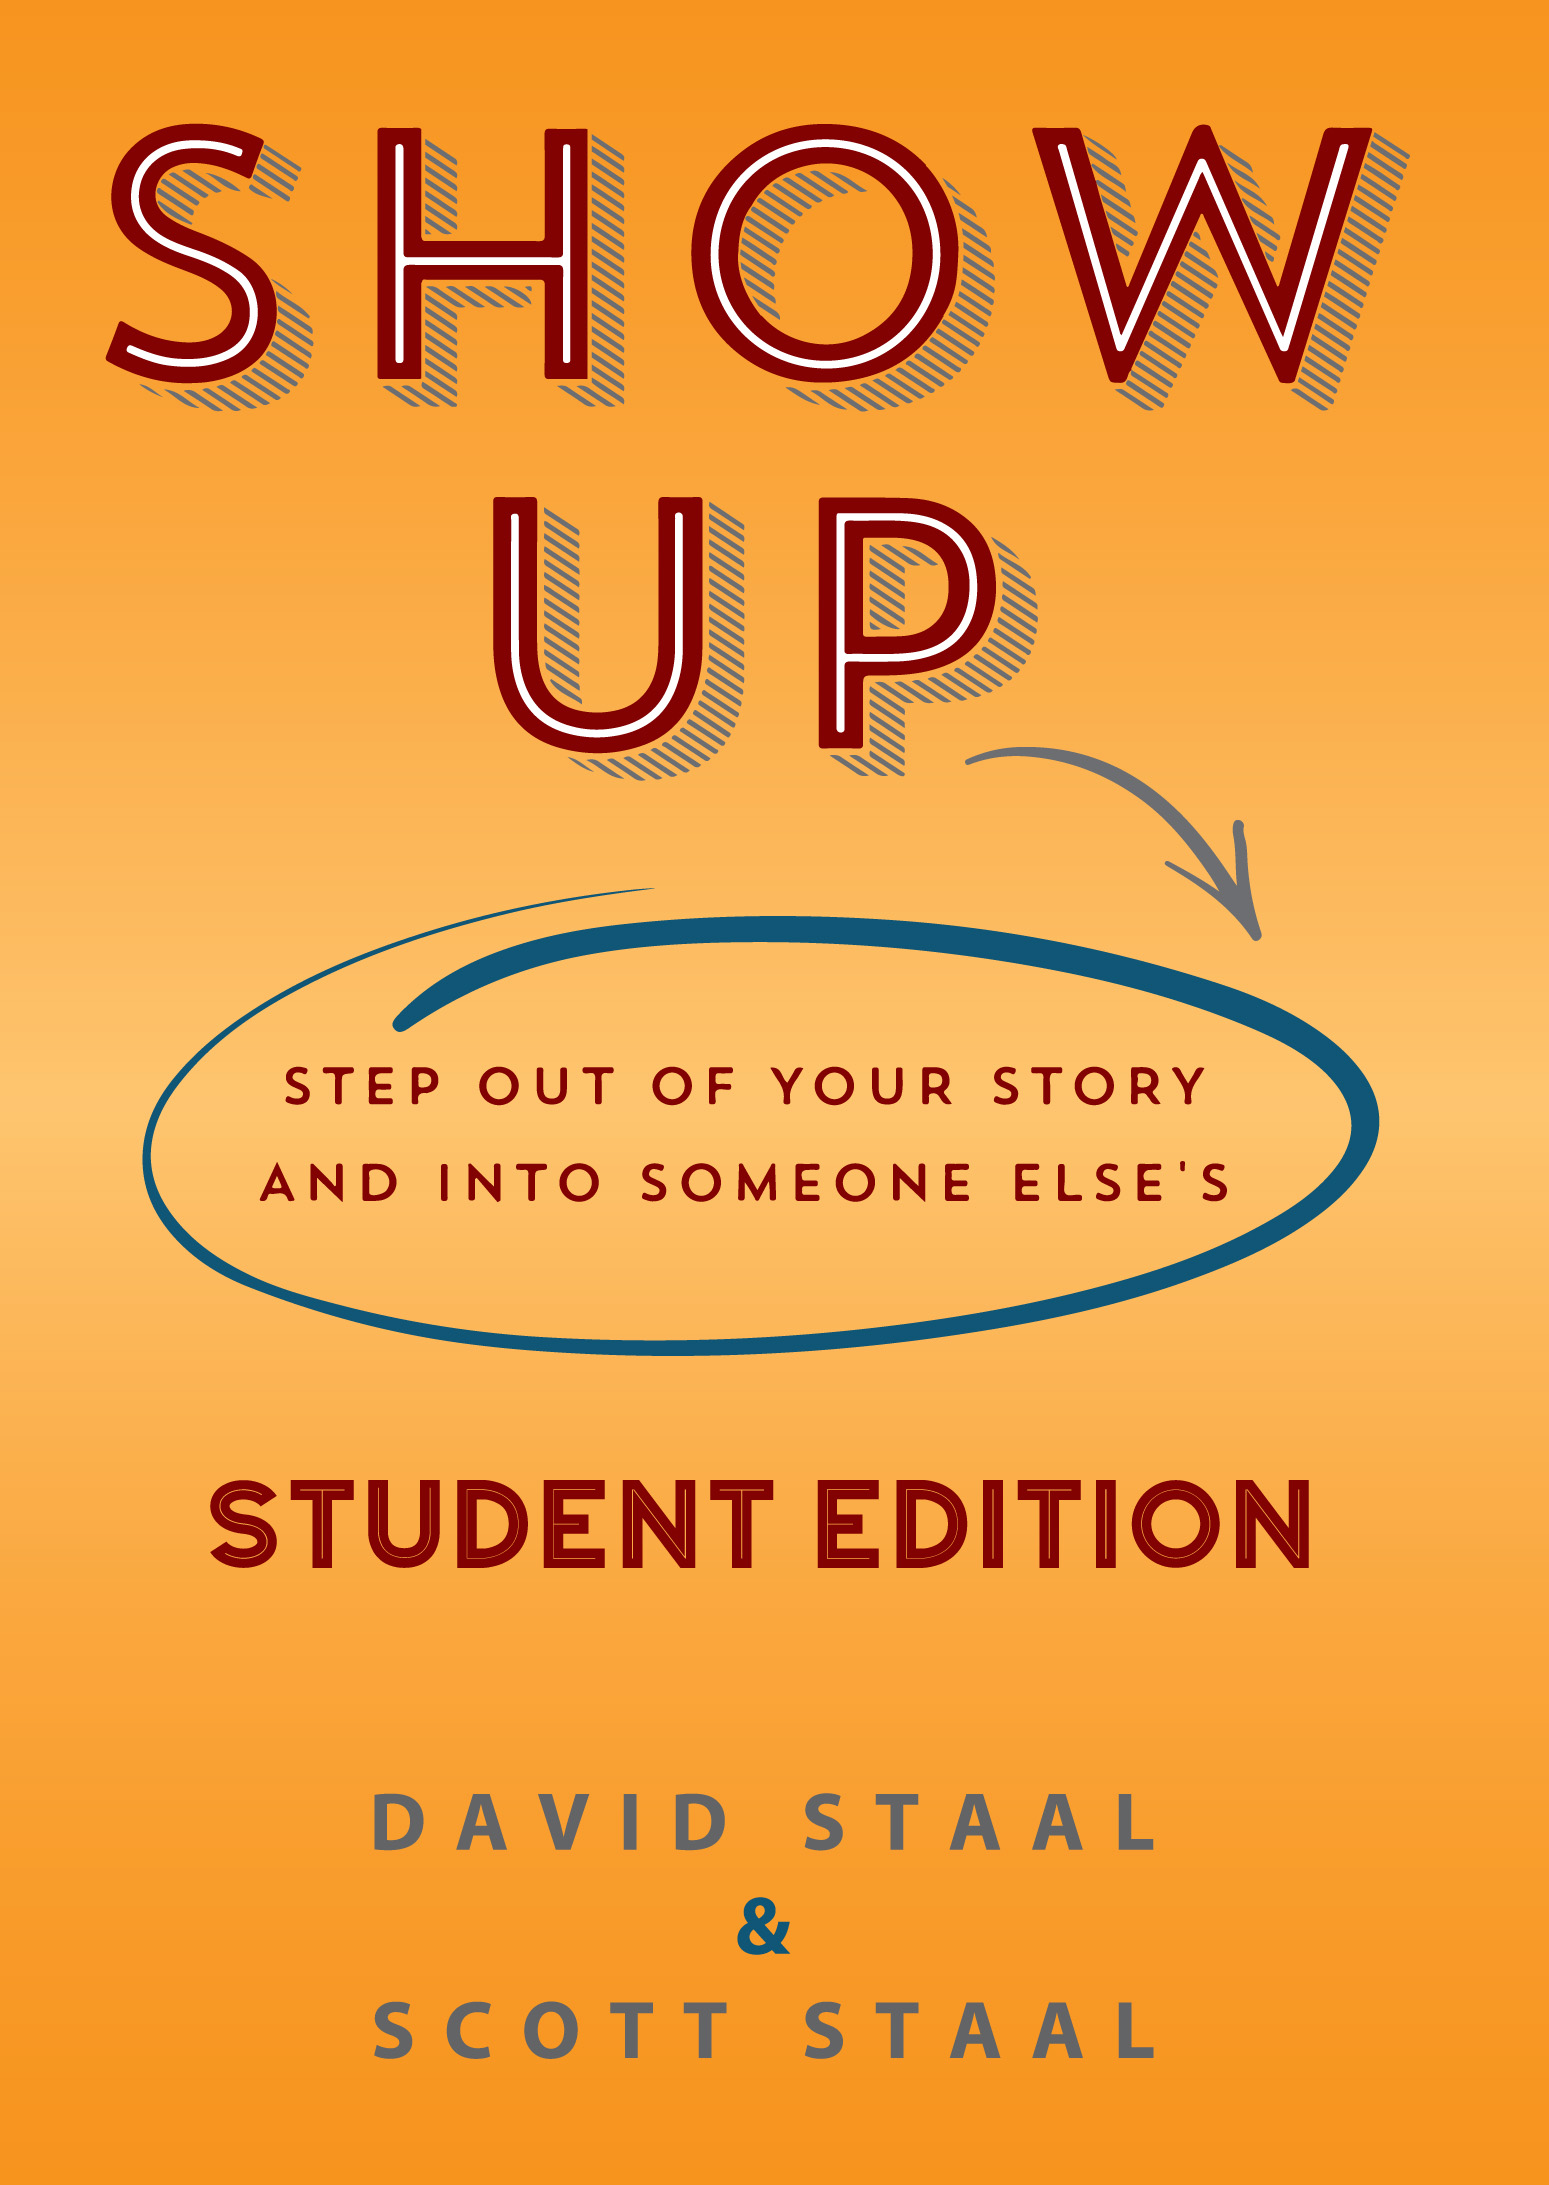 Show Up Student Edition: Step Out of Your Story and Into Someone Else's, an  Ebook by David Staal